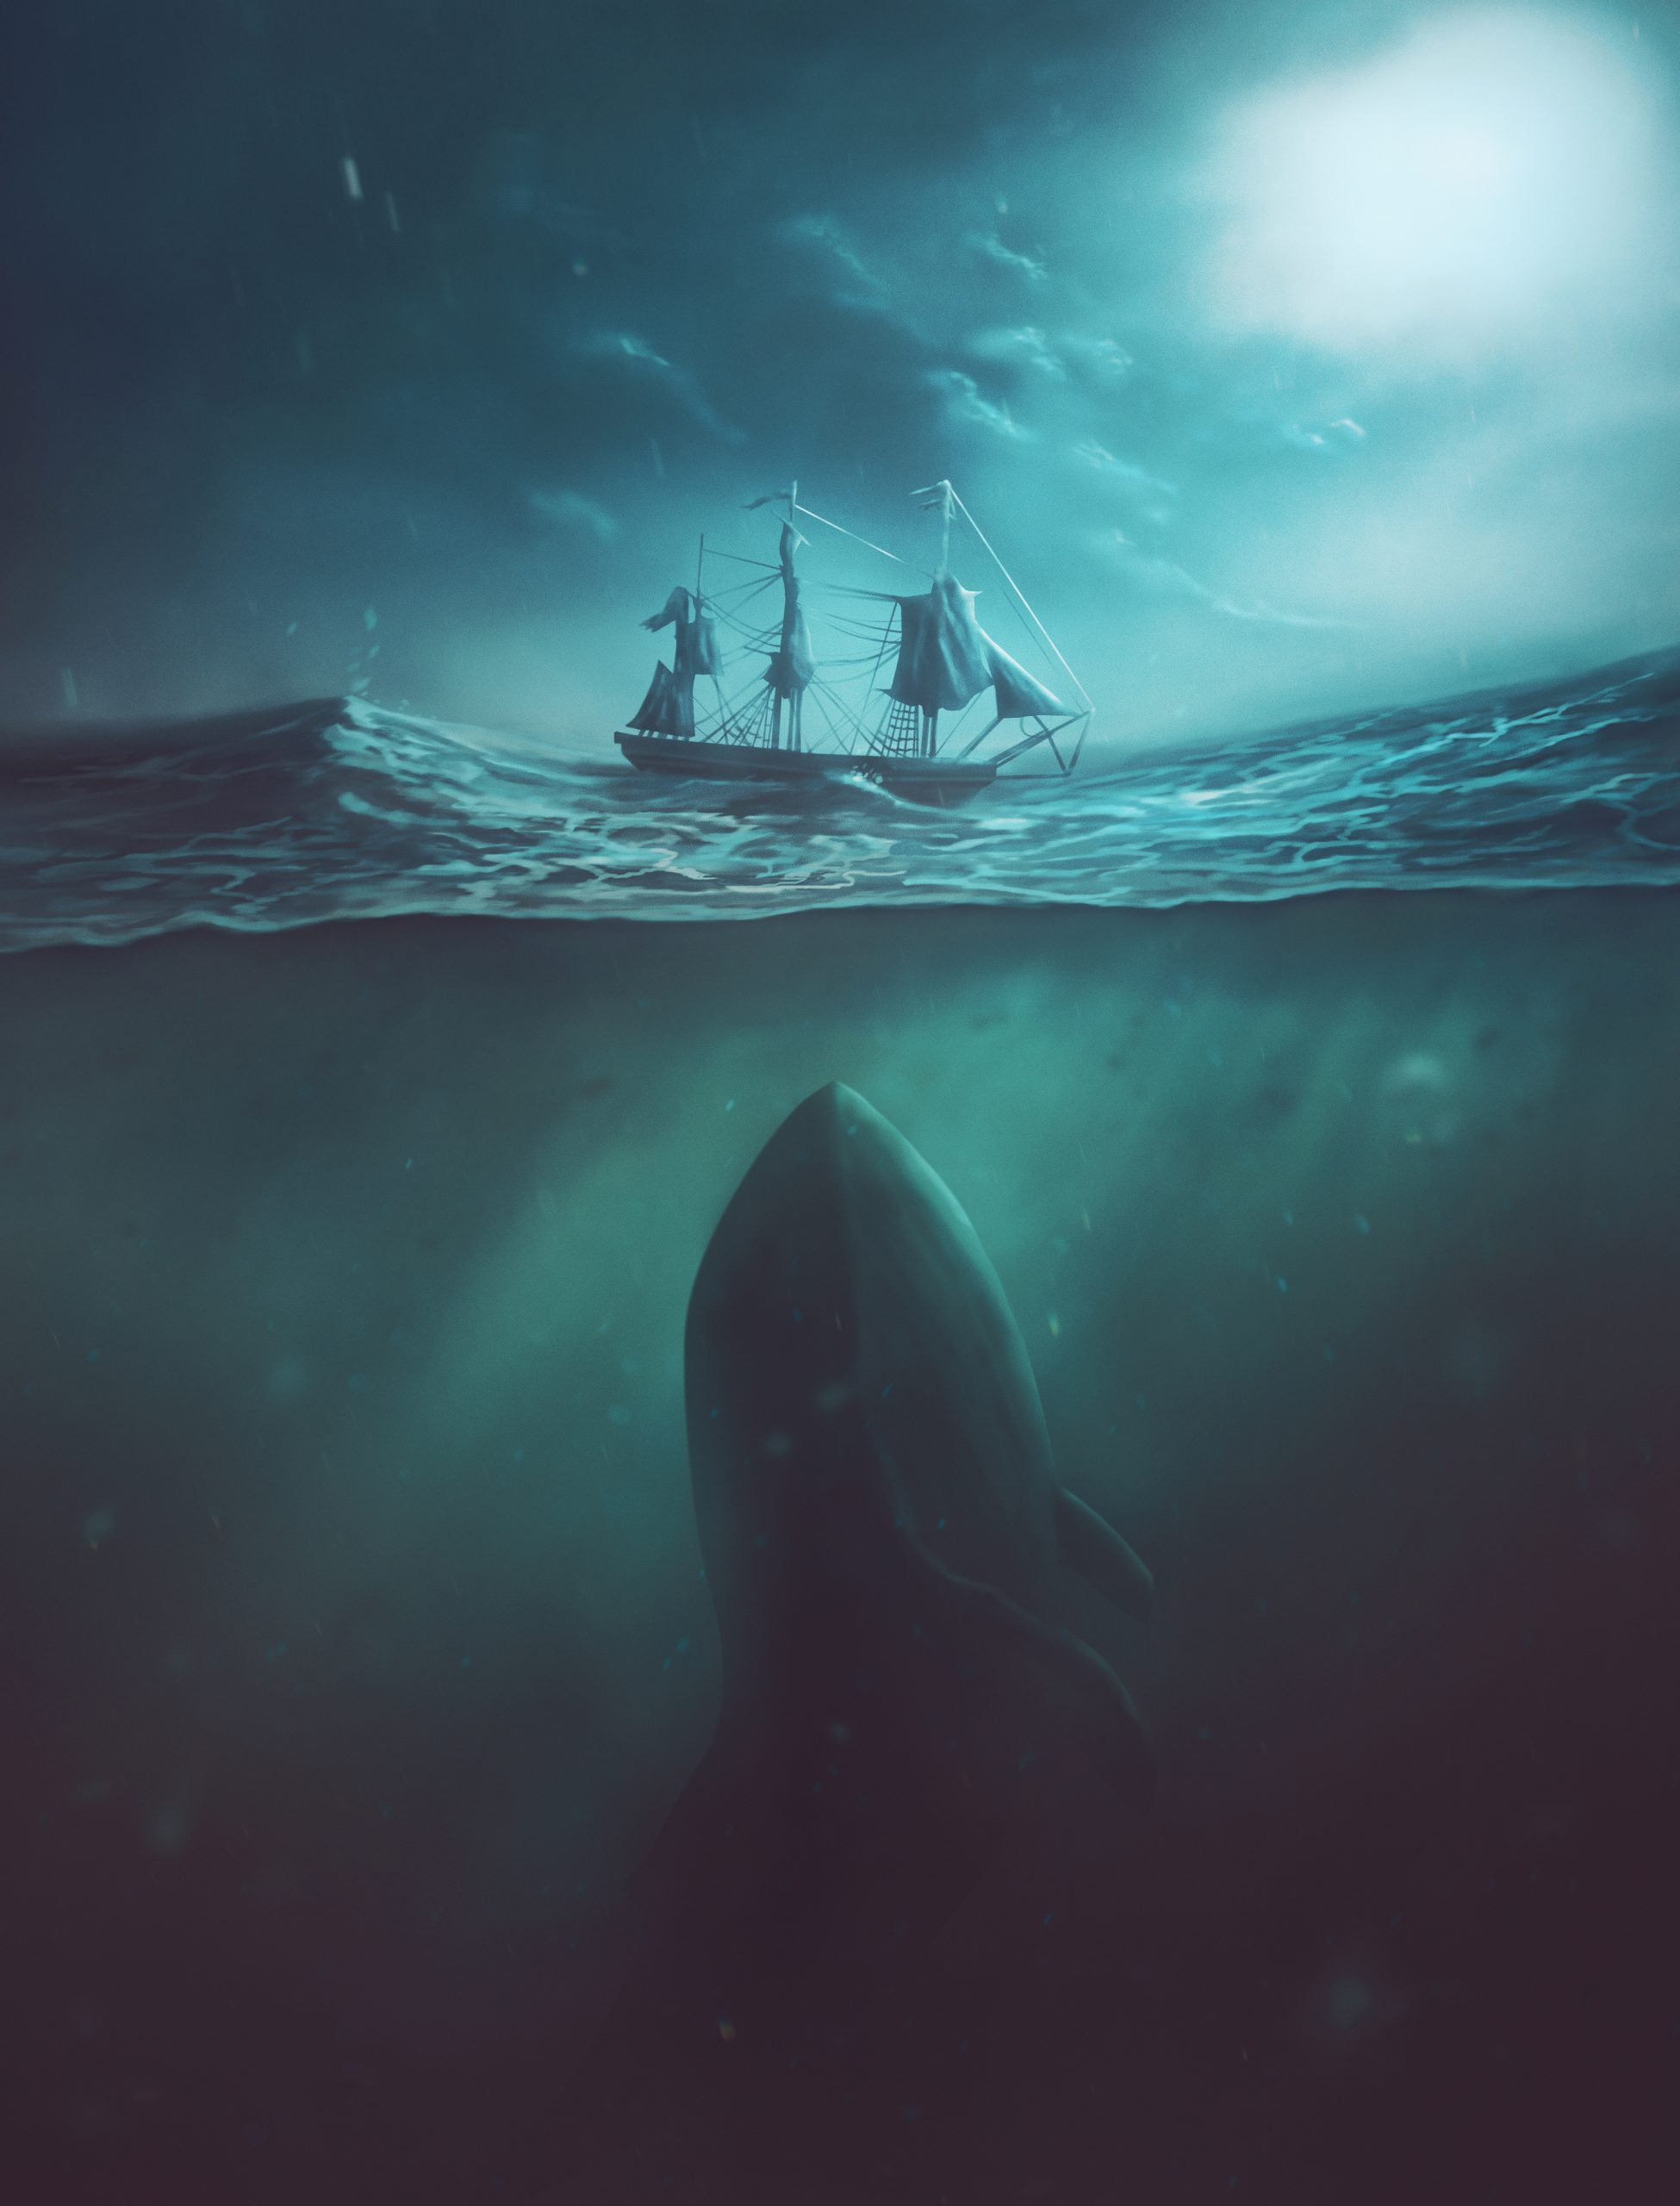 A digital painting of a large whale underneath the waters below a boat.